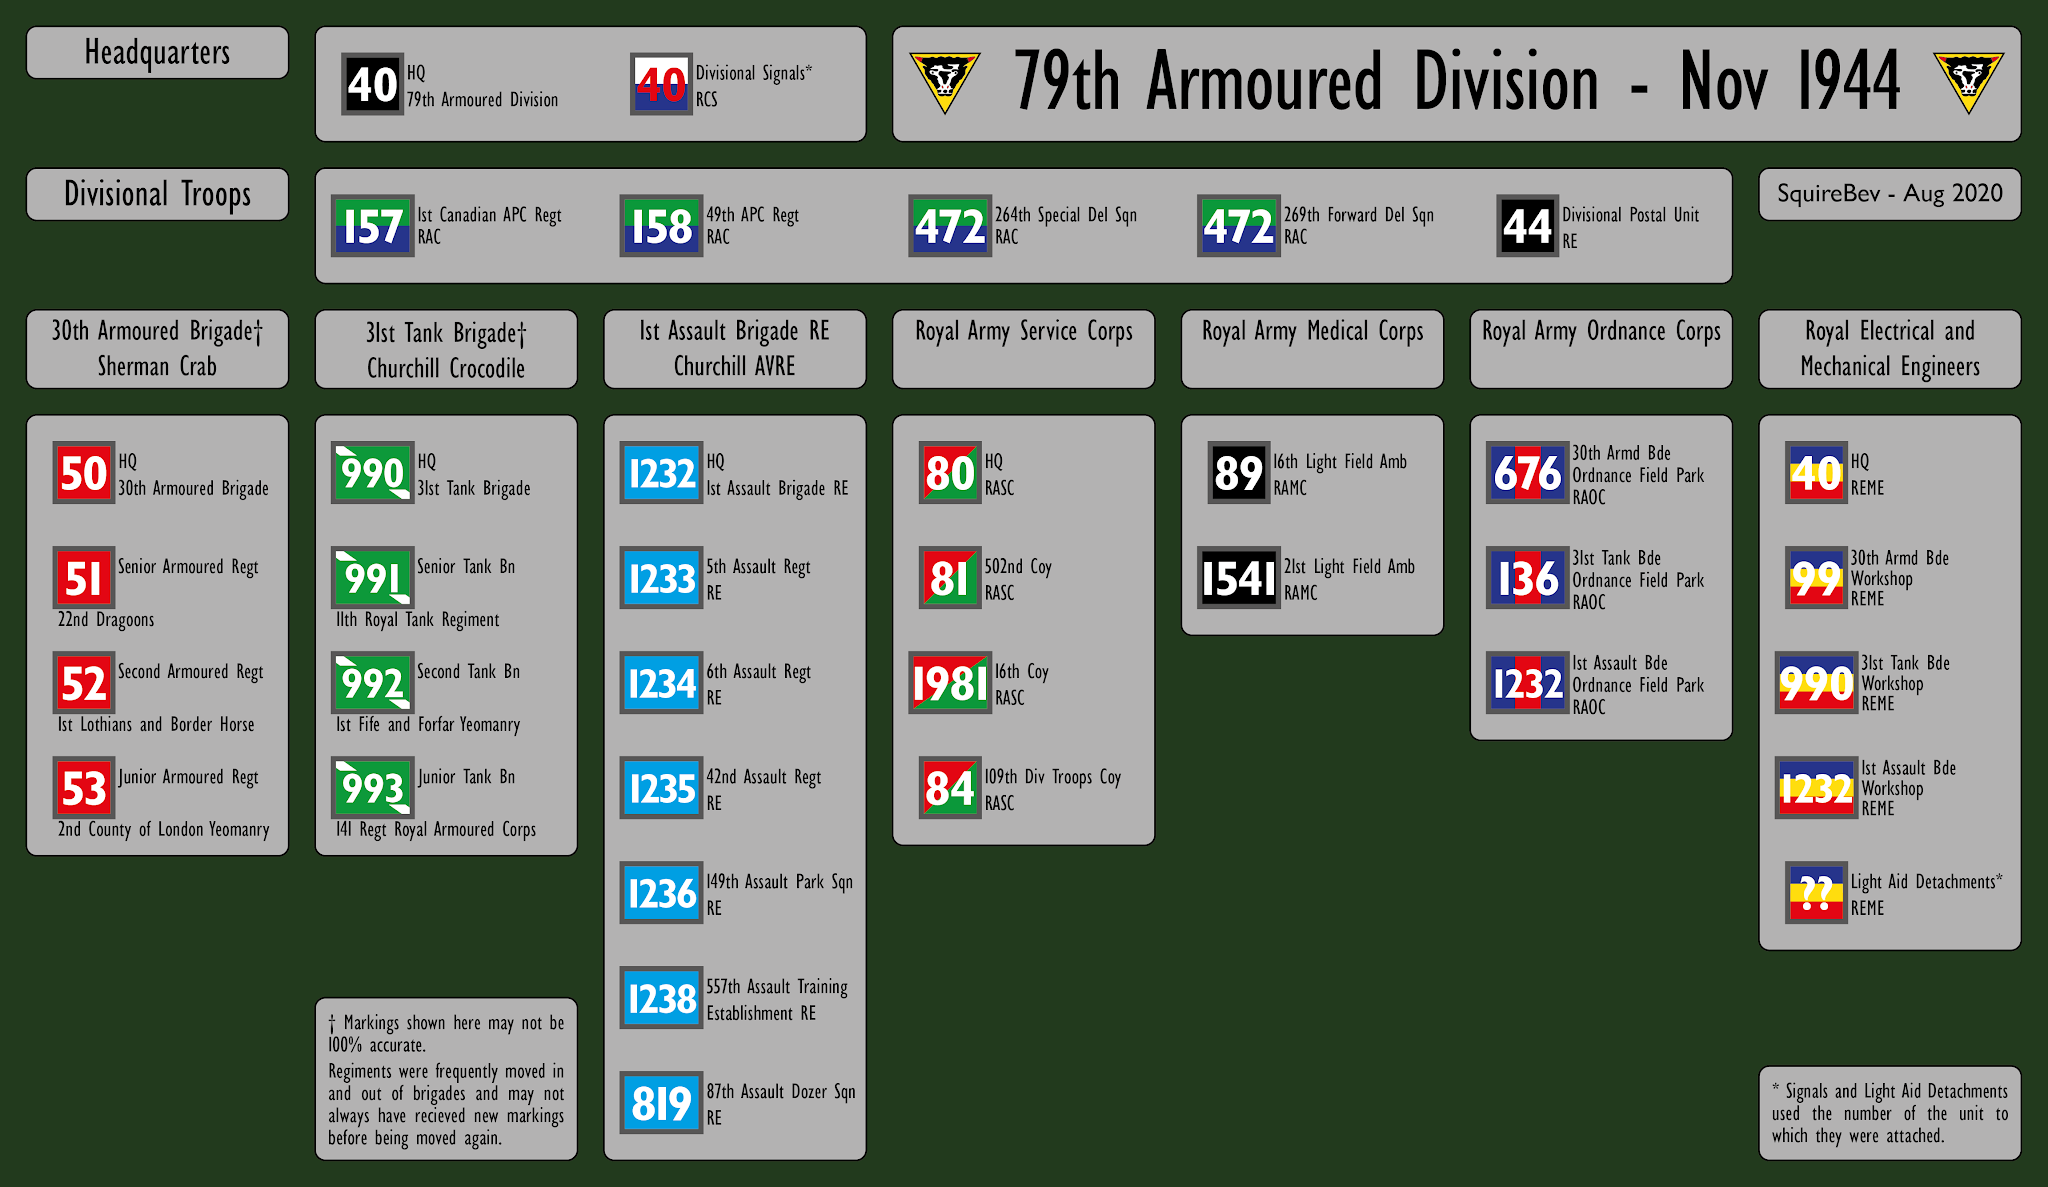 UK+-+Europe+-+79th+Armoured+Division+-+N